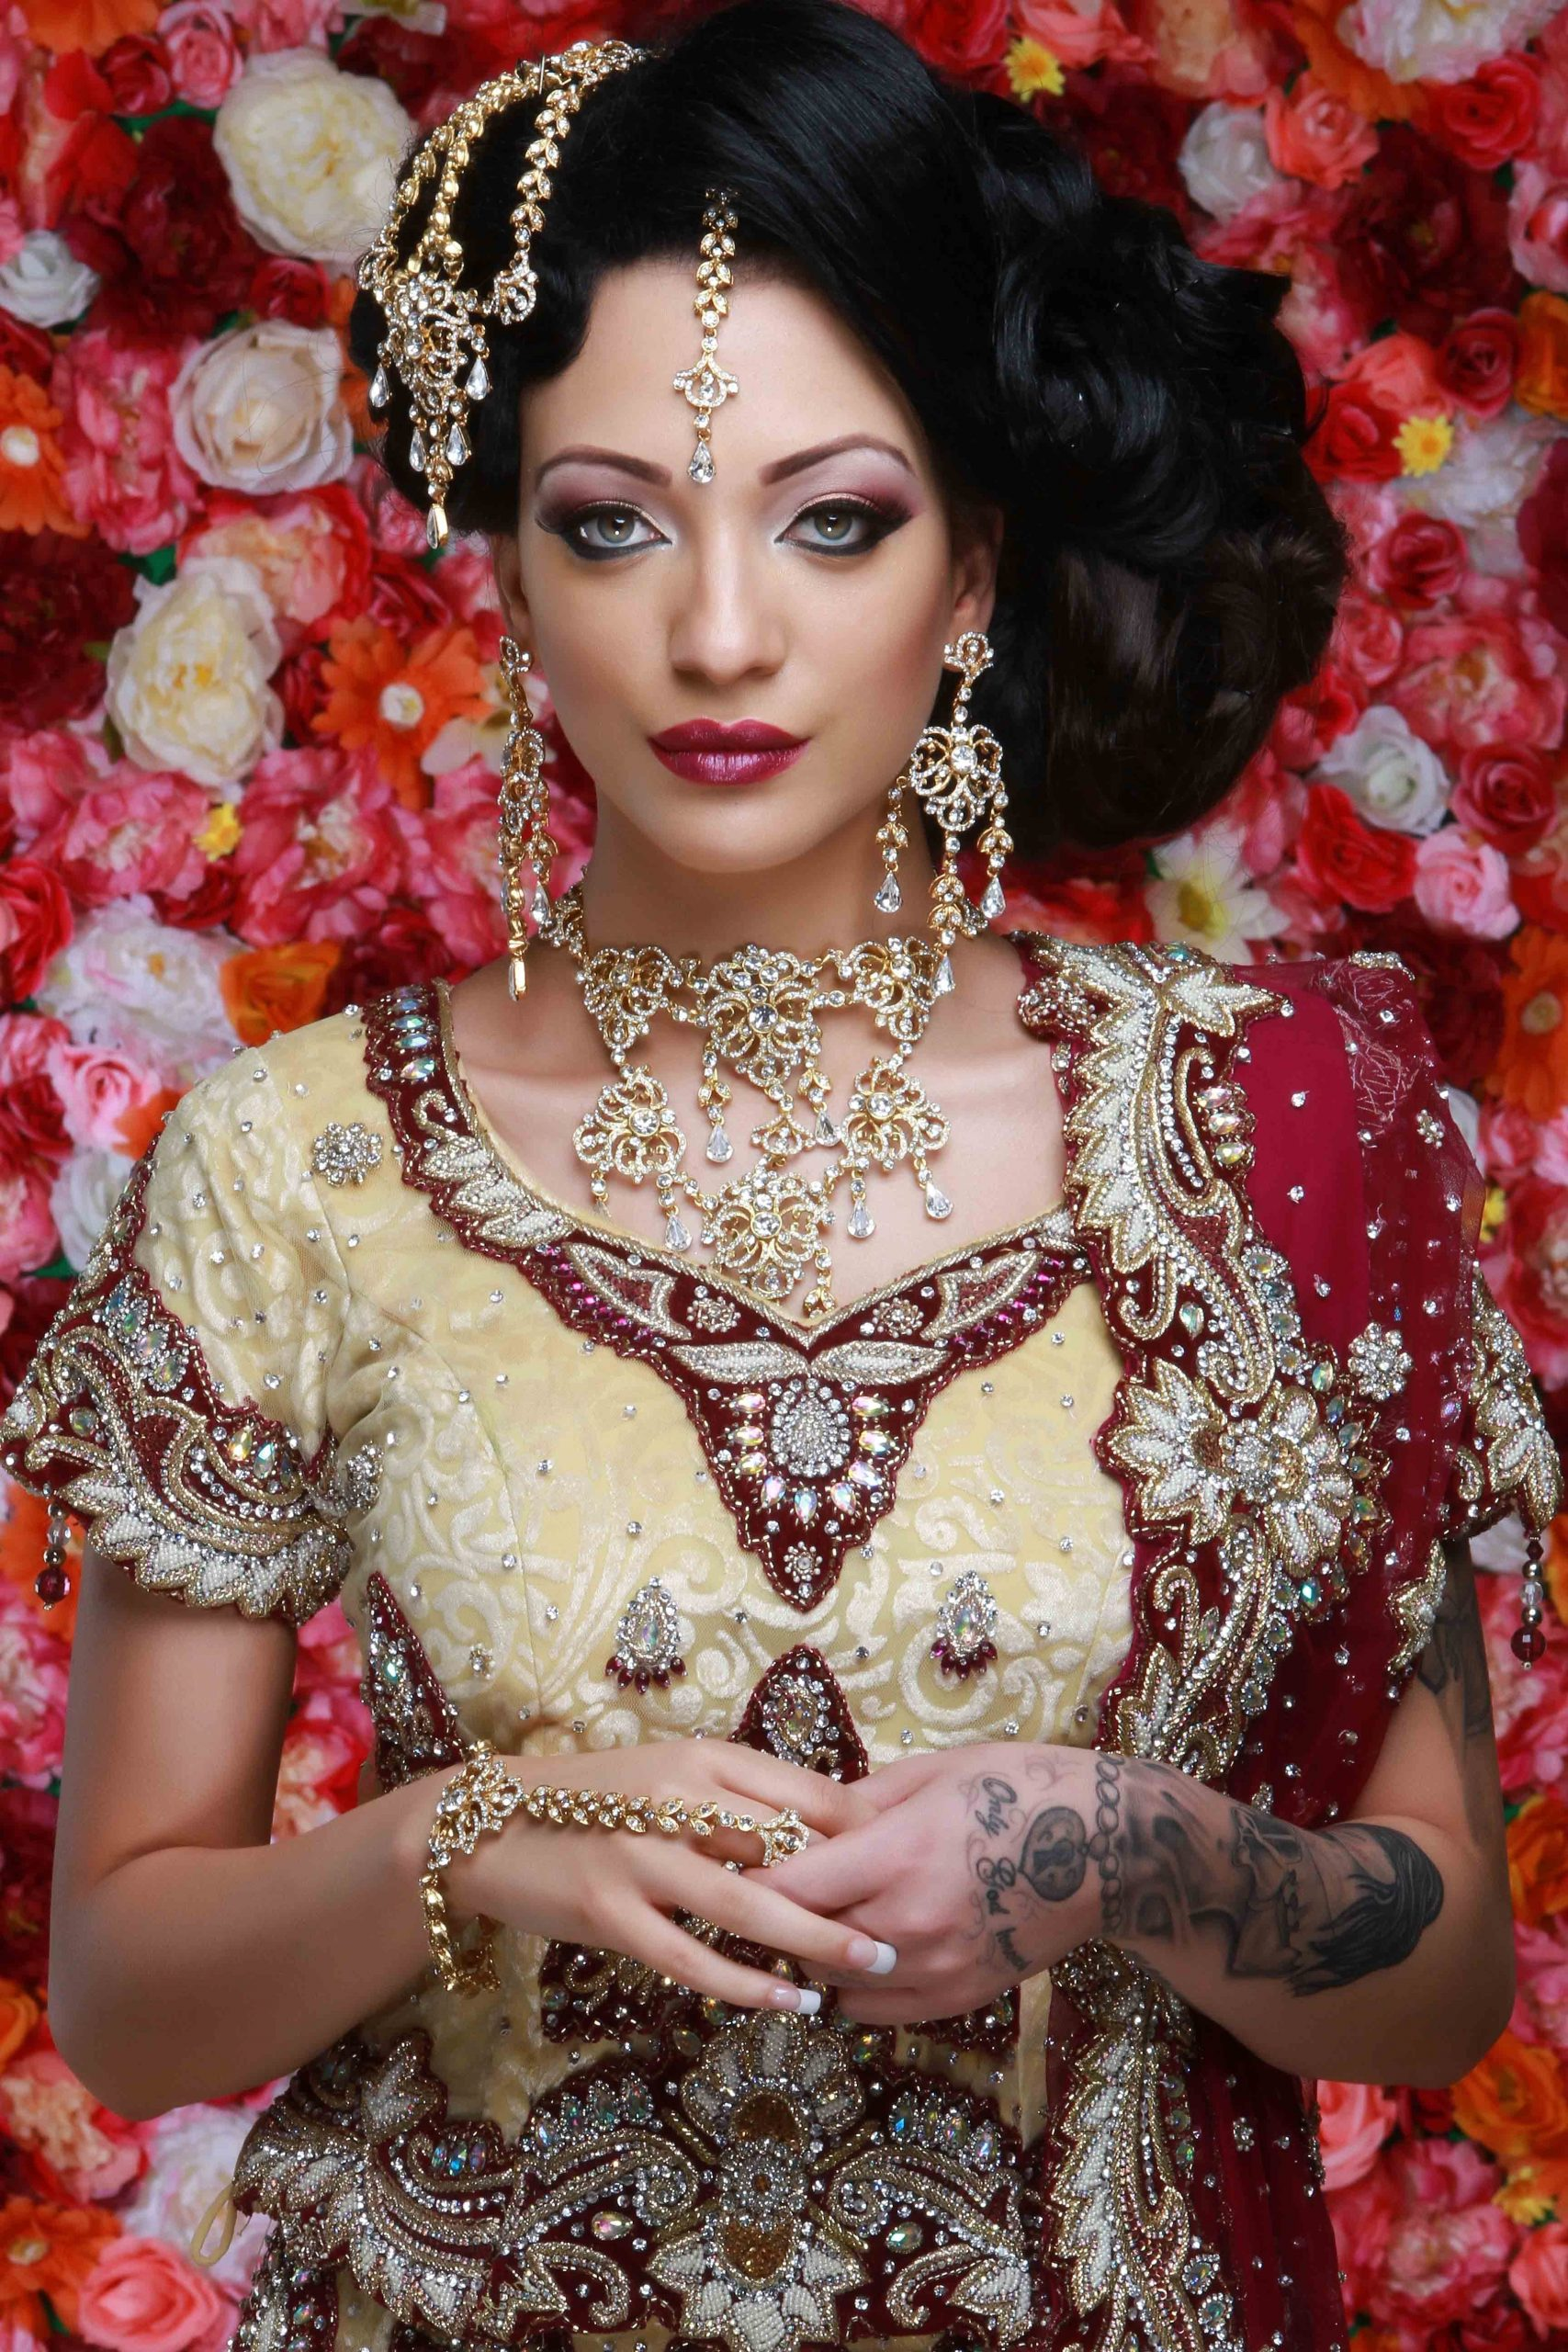 Asian Bridal Makeup Courses In Uk.fully Accredited.now within Indian Hair And Makeup Harrow